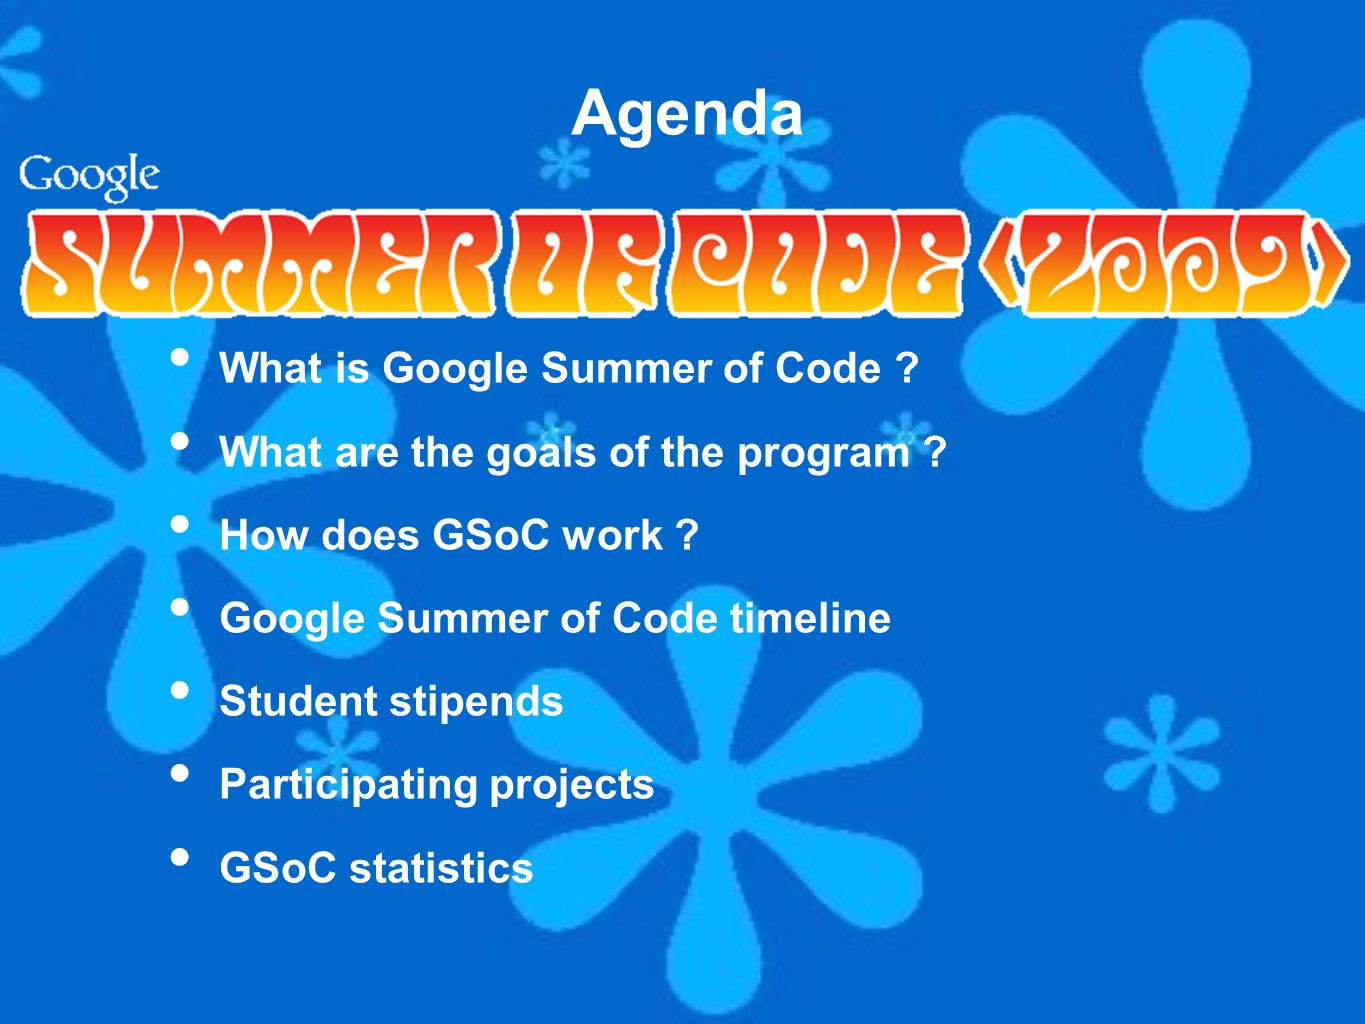 Google Summer of Code web page http://code.google.com/soc/2009/ Google Summer of Code FAQ http://code.google.com/soc/2009/faqs.html Google Summer of Code discussion group http://groups.google.com/group/google-summer-of-code-discuss Chat with us at IRC Freenode #gsoc channel Useful links